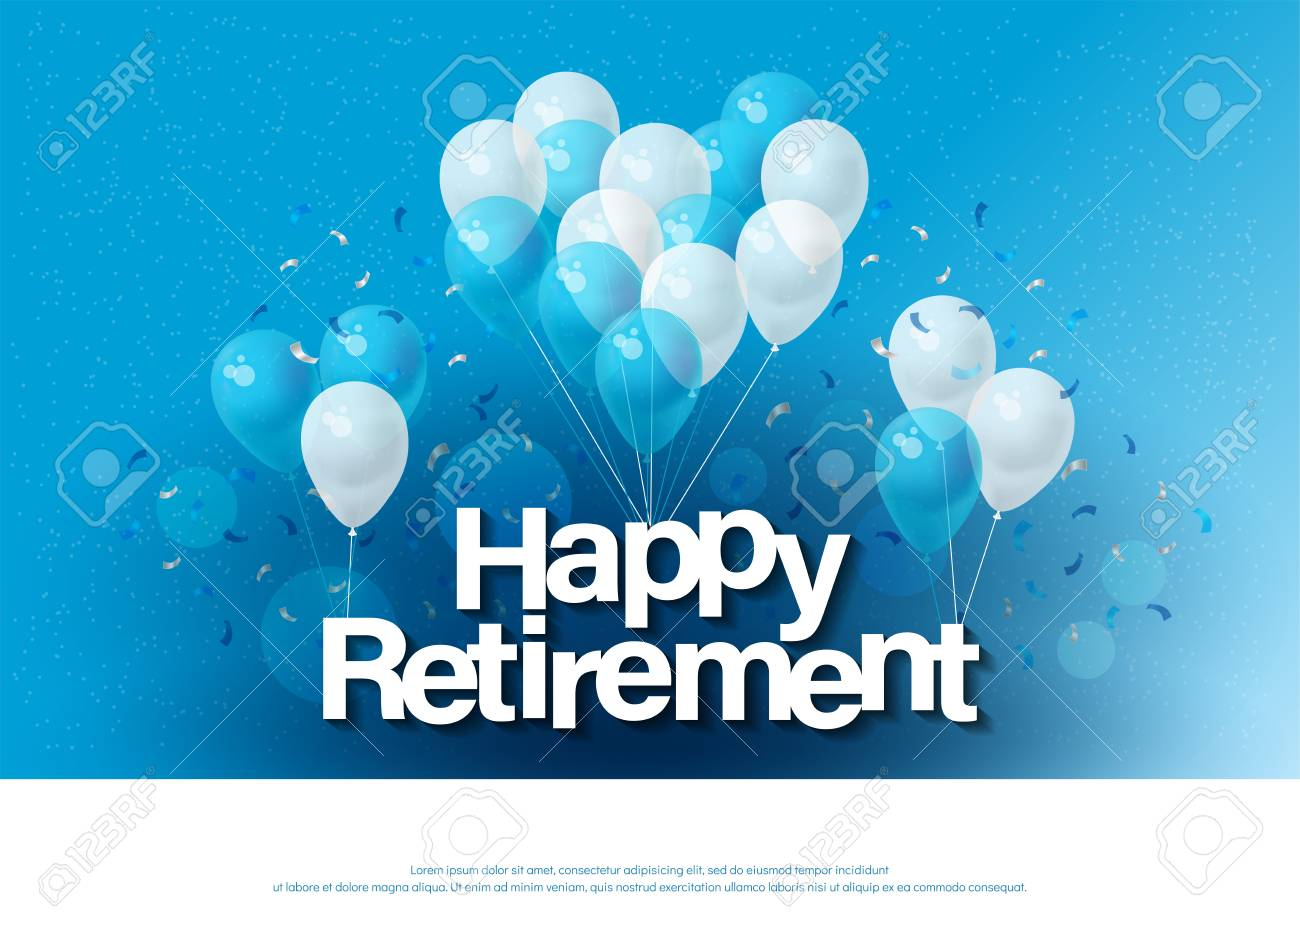 Happy Retirement Greeting Card Lettering Template With Balloon